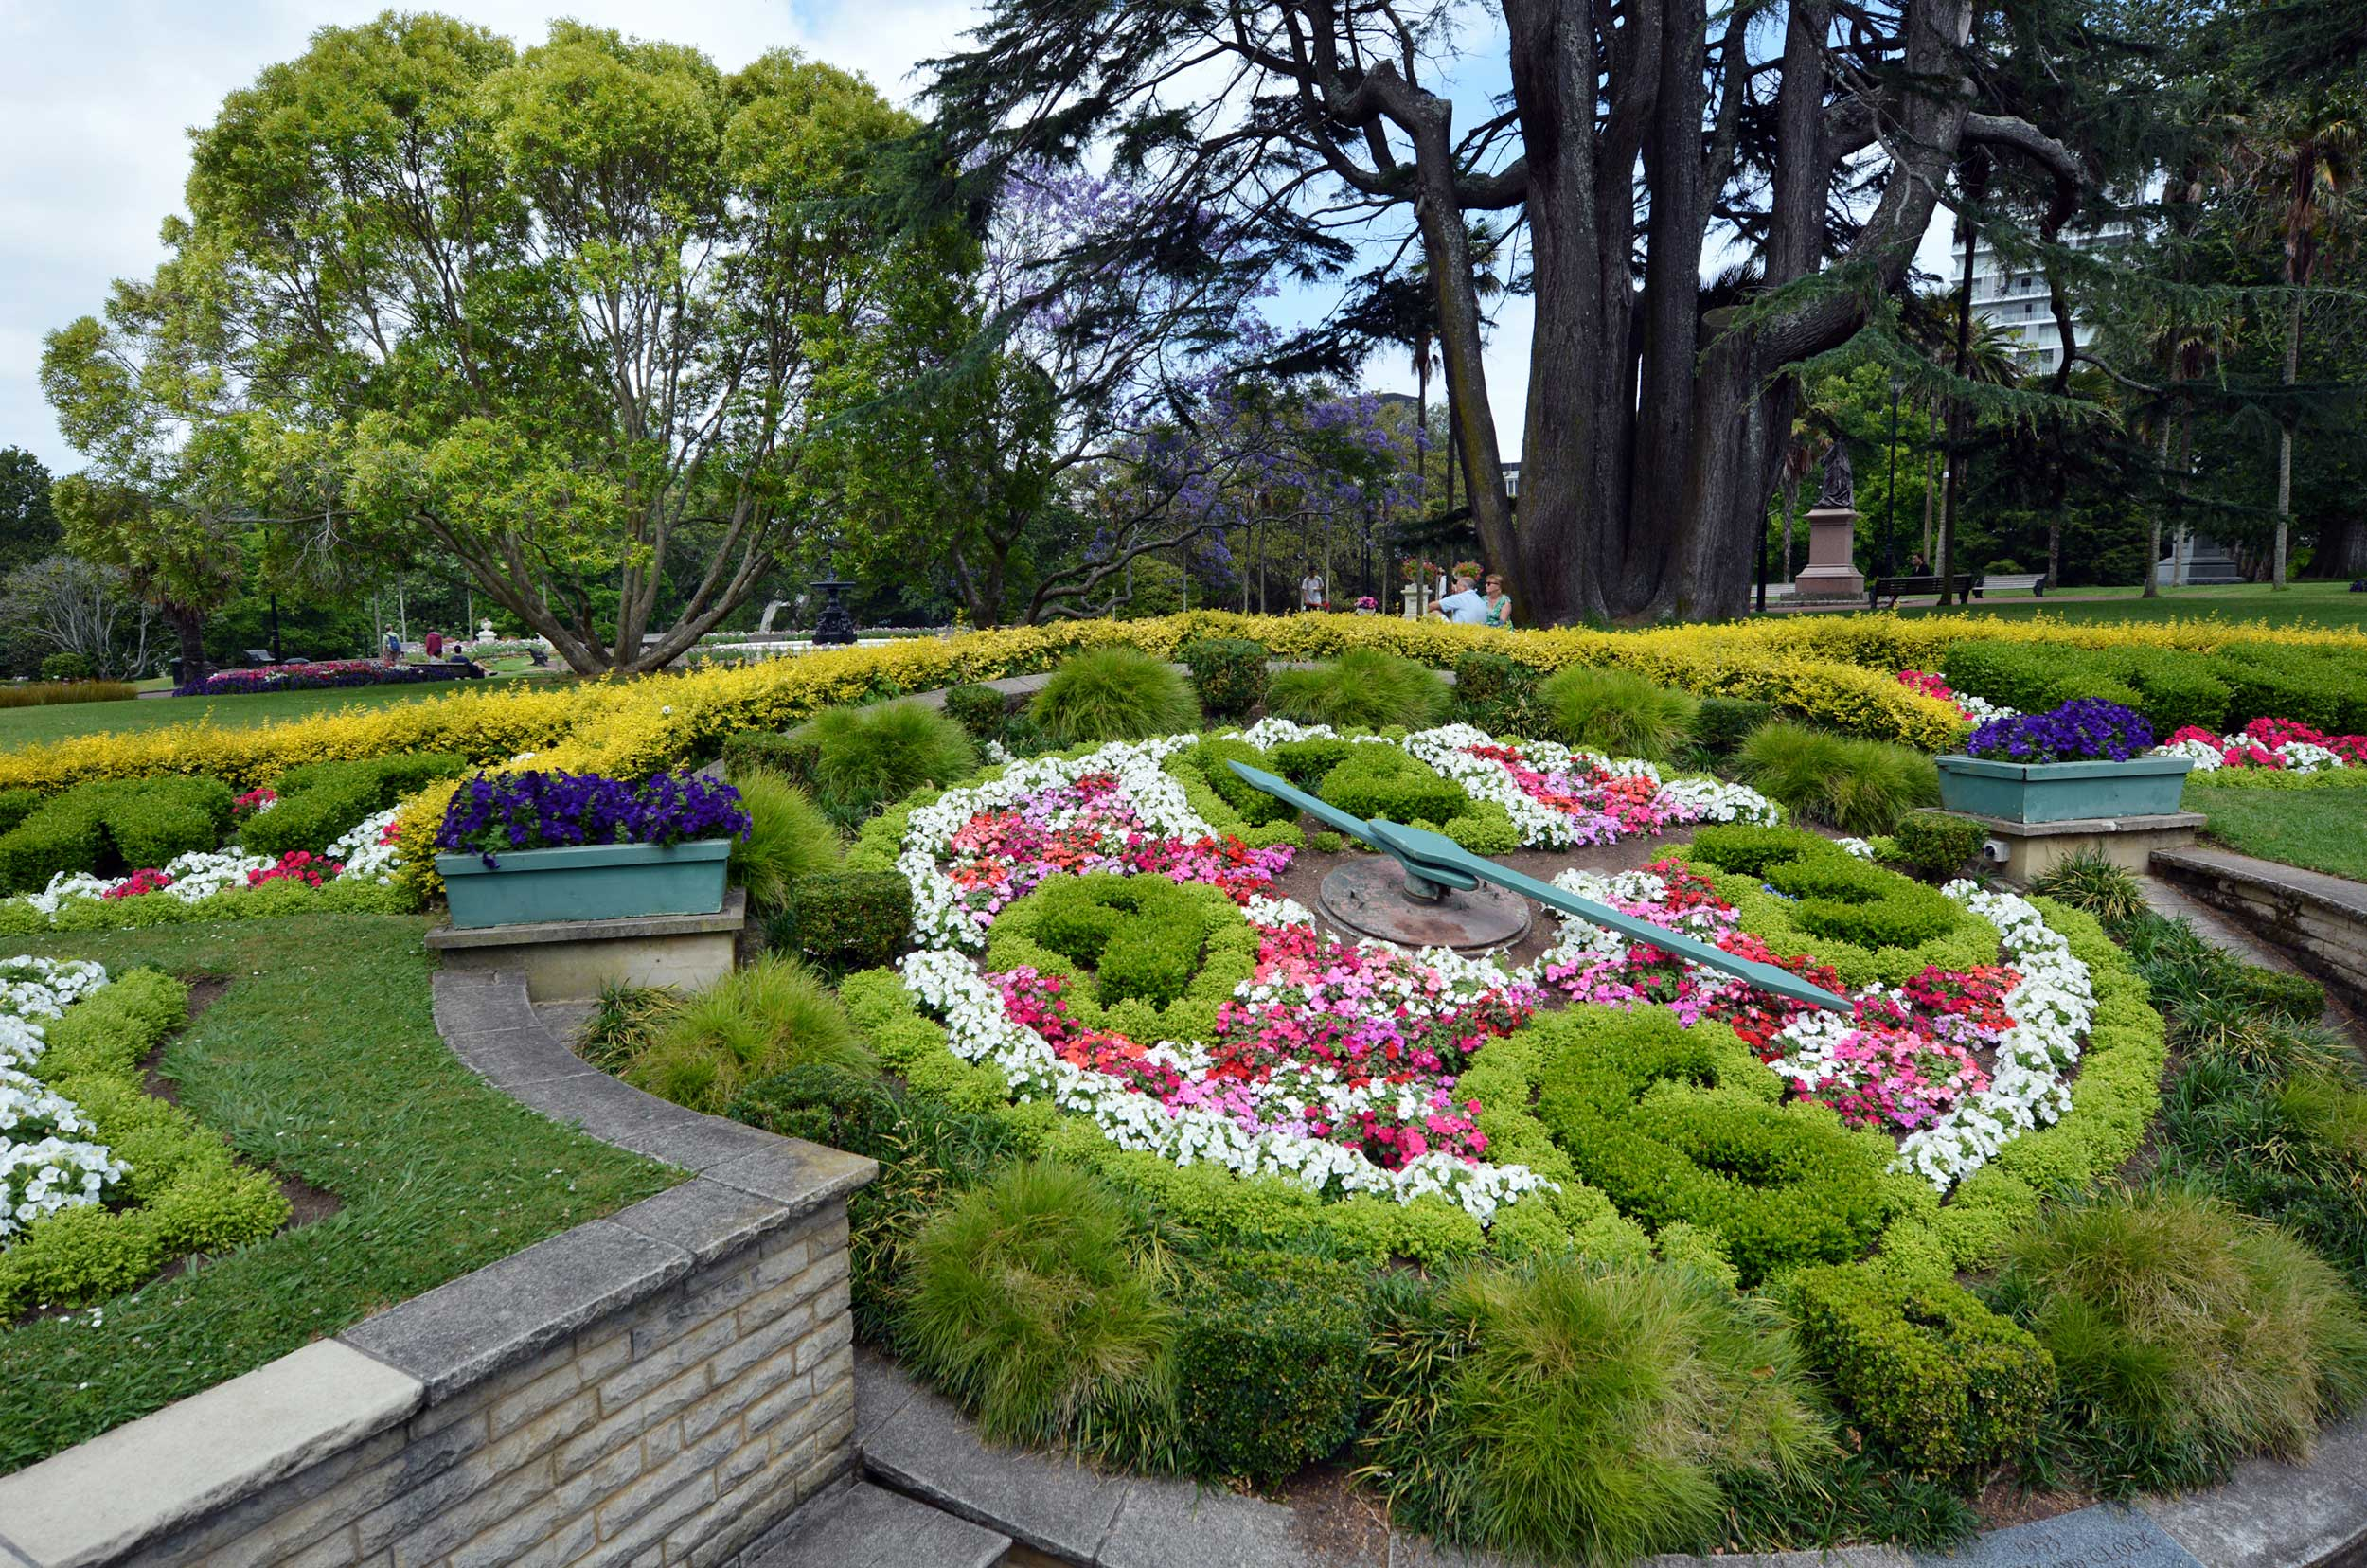 A multi-floral clock in Albert Park, Auckland